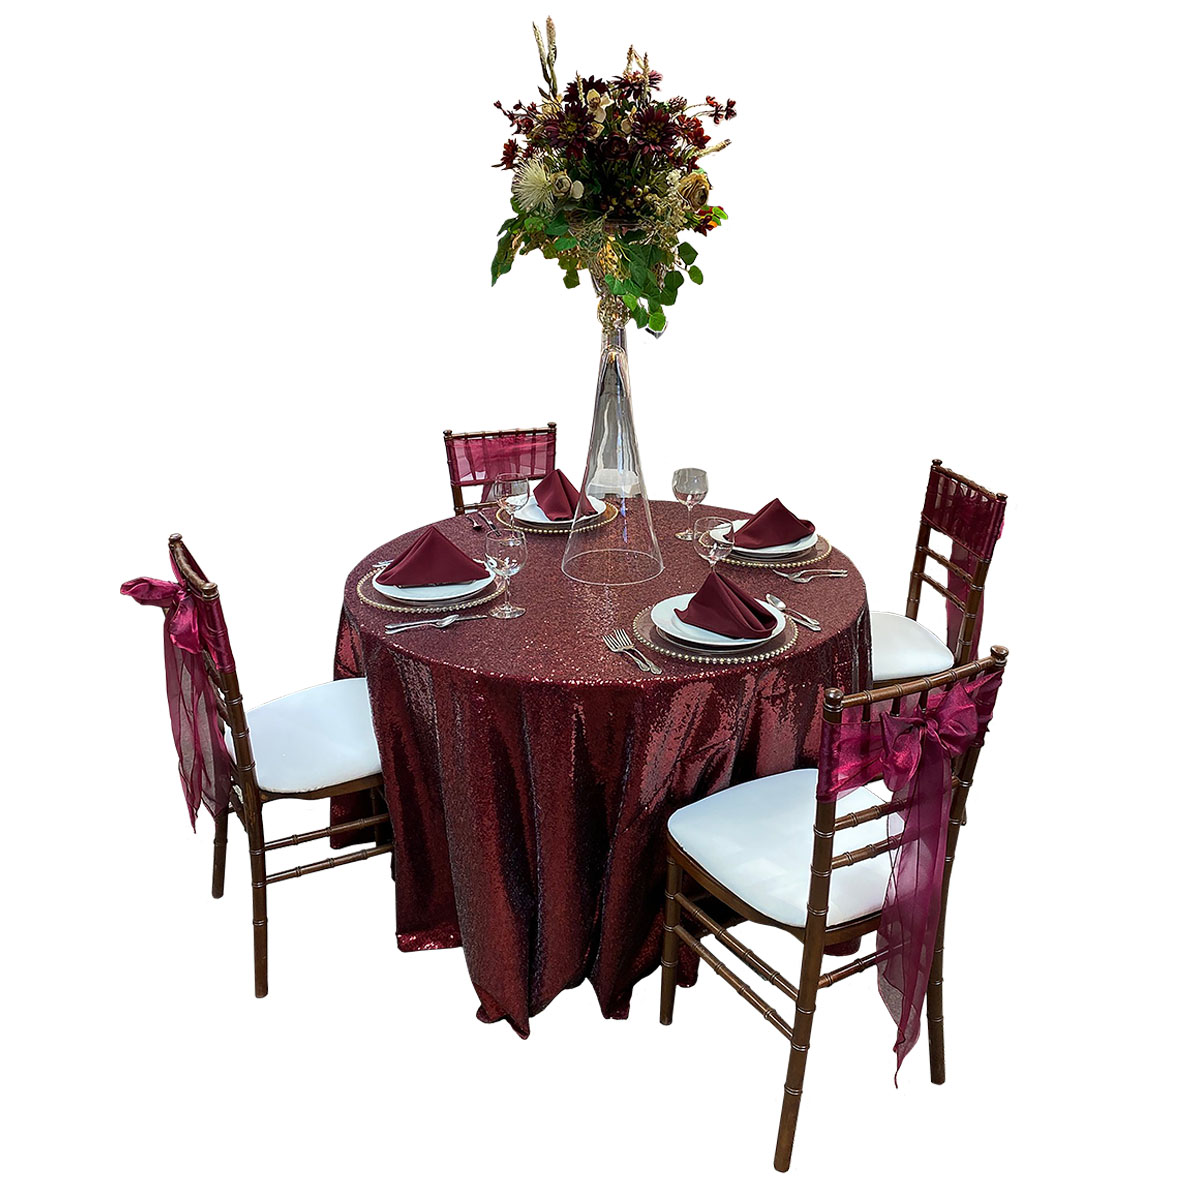 "48"" Round Table With 108"" Round Crimson Glimmer Tablecover, Fruitwood Chiavari Chairs With White Pads, Wine Organza Sashes, Glass Chargers With Gold Beads, White Swirl China, Balloon Wine Glasses, Merlot Solid Napkins And Clarinet Vase (Floral Not Included)"